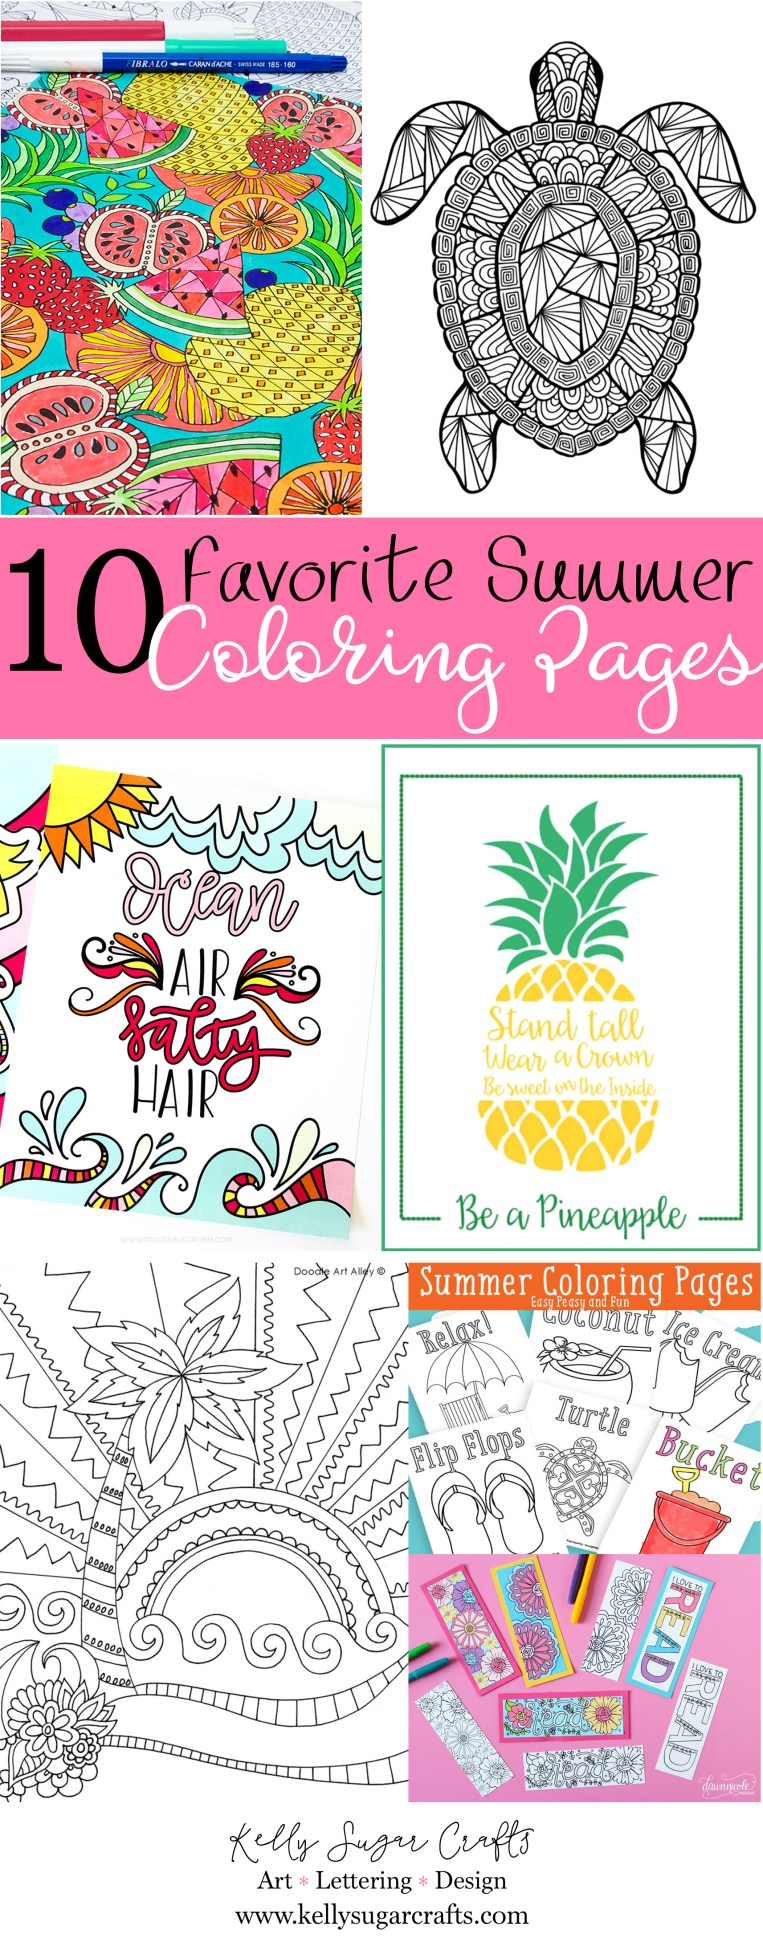 10 favorite summer coloring pages free printables kelly sugar